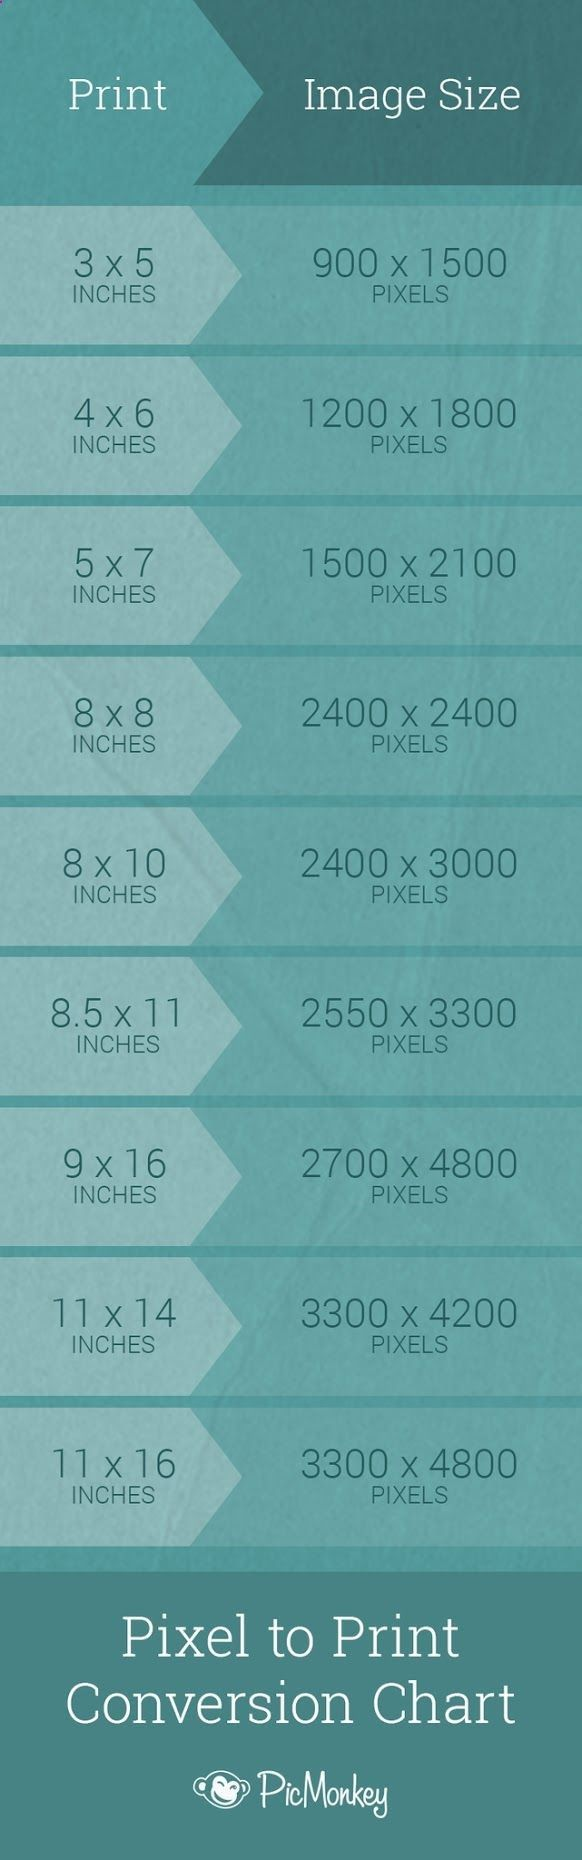 Cc to inches conversion chart images free any chart examples cc to inches conversion chart choice image free any chart examples cc to inches conversion chart nvjuhfo Gallery